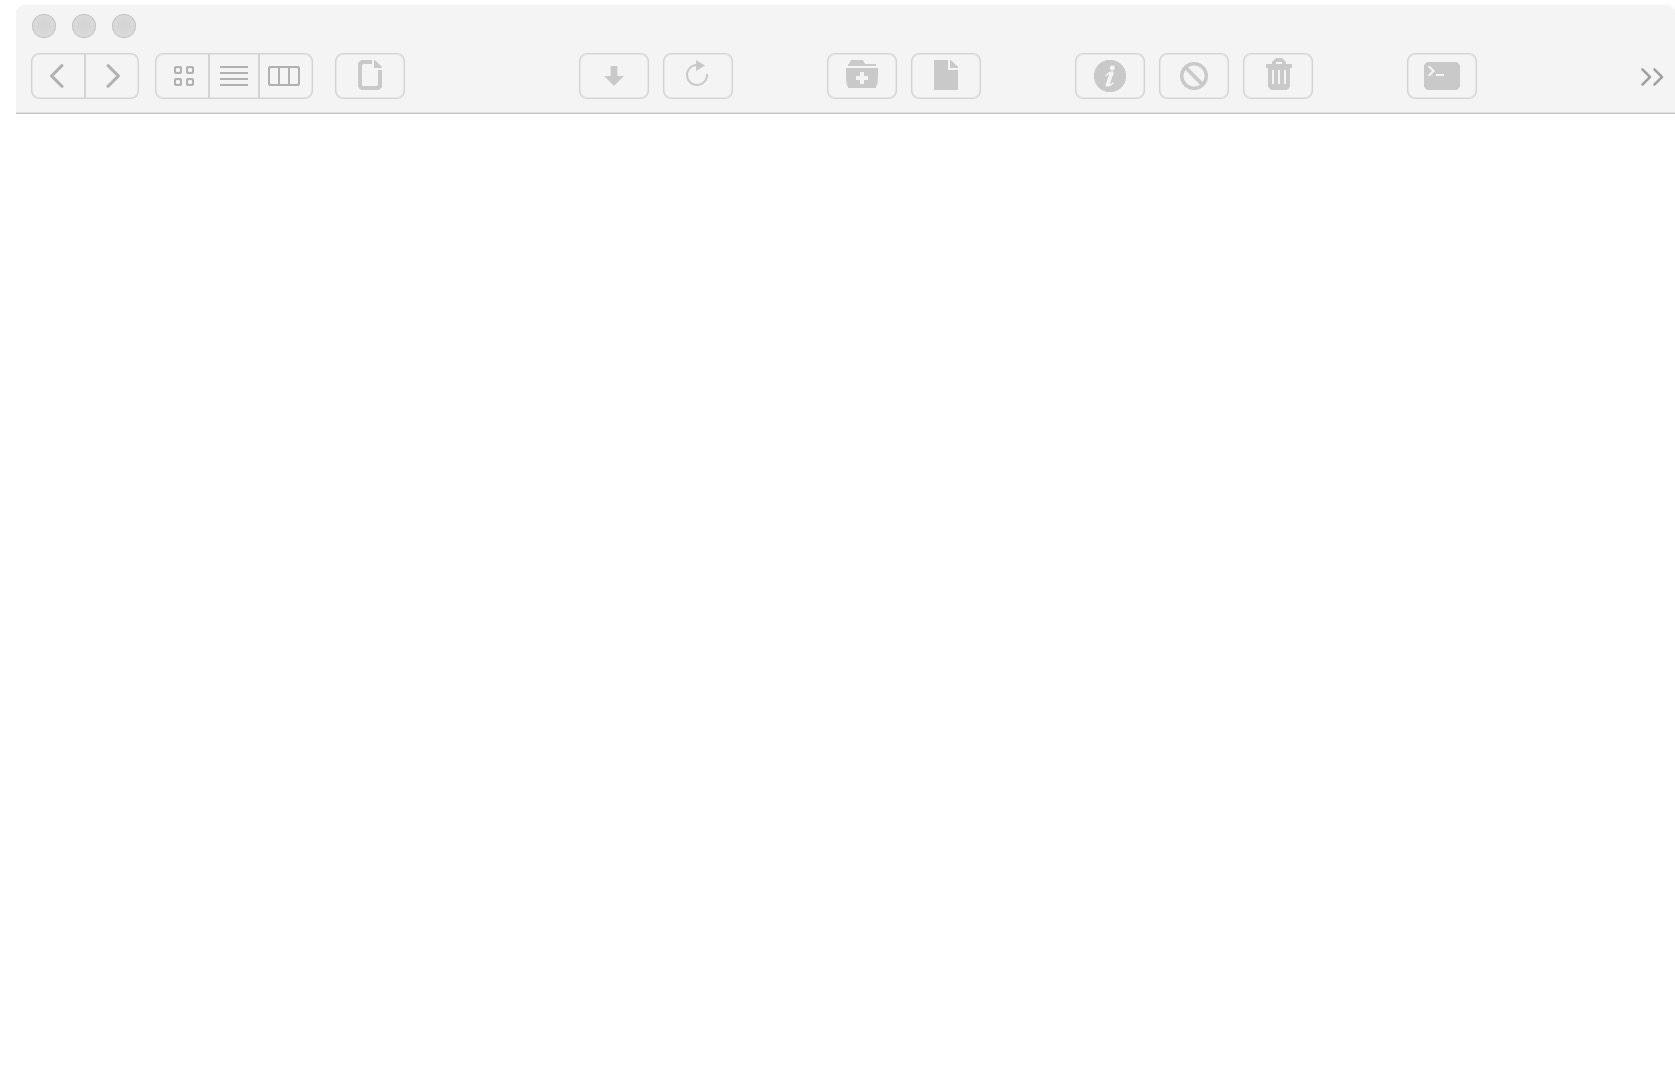 Pf8-blank-window-for-new-browser-bug